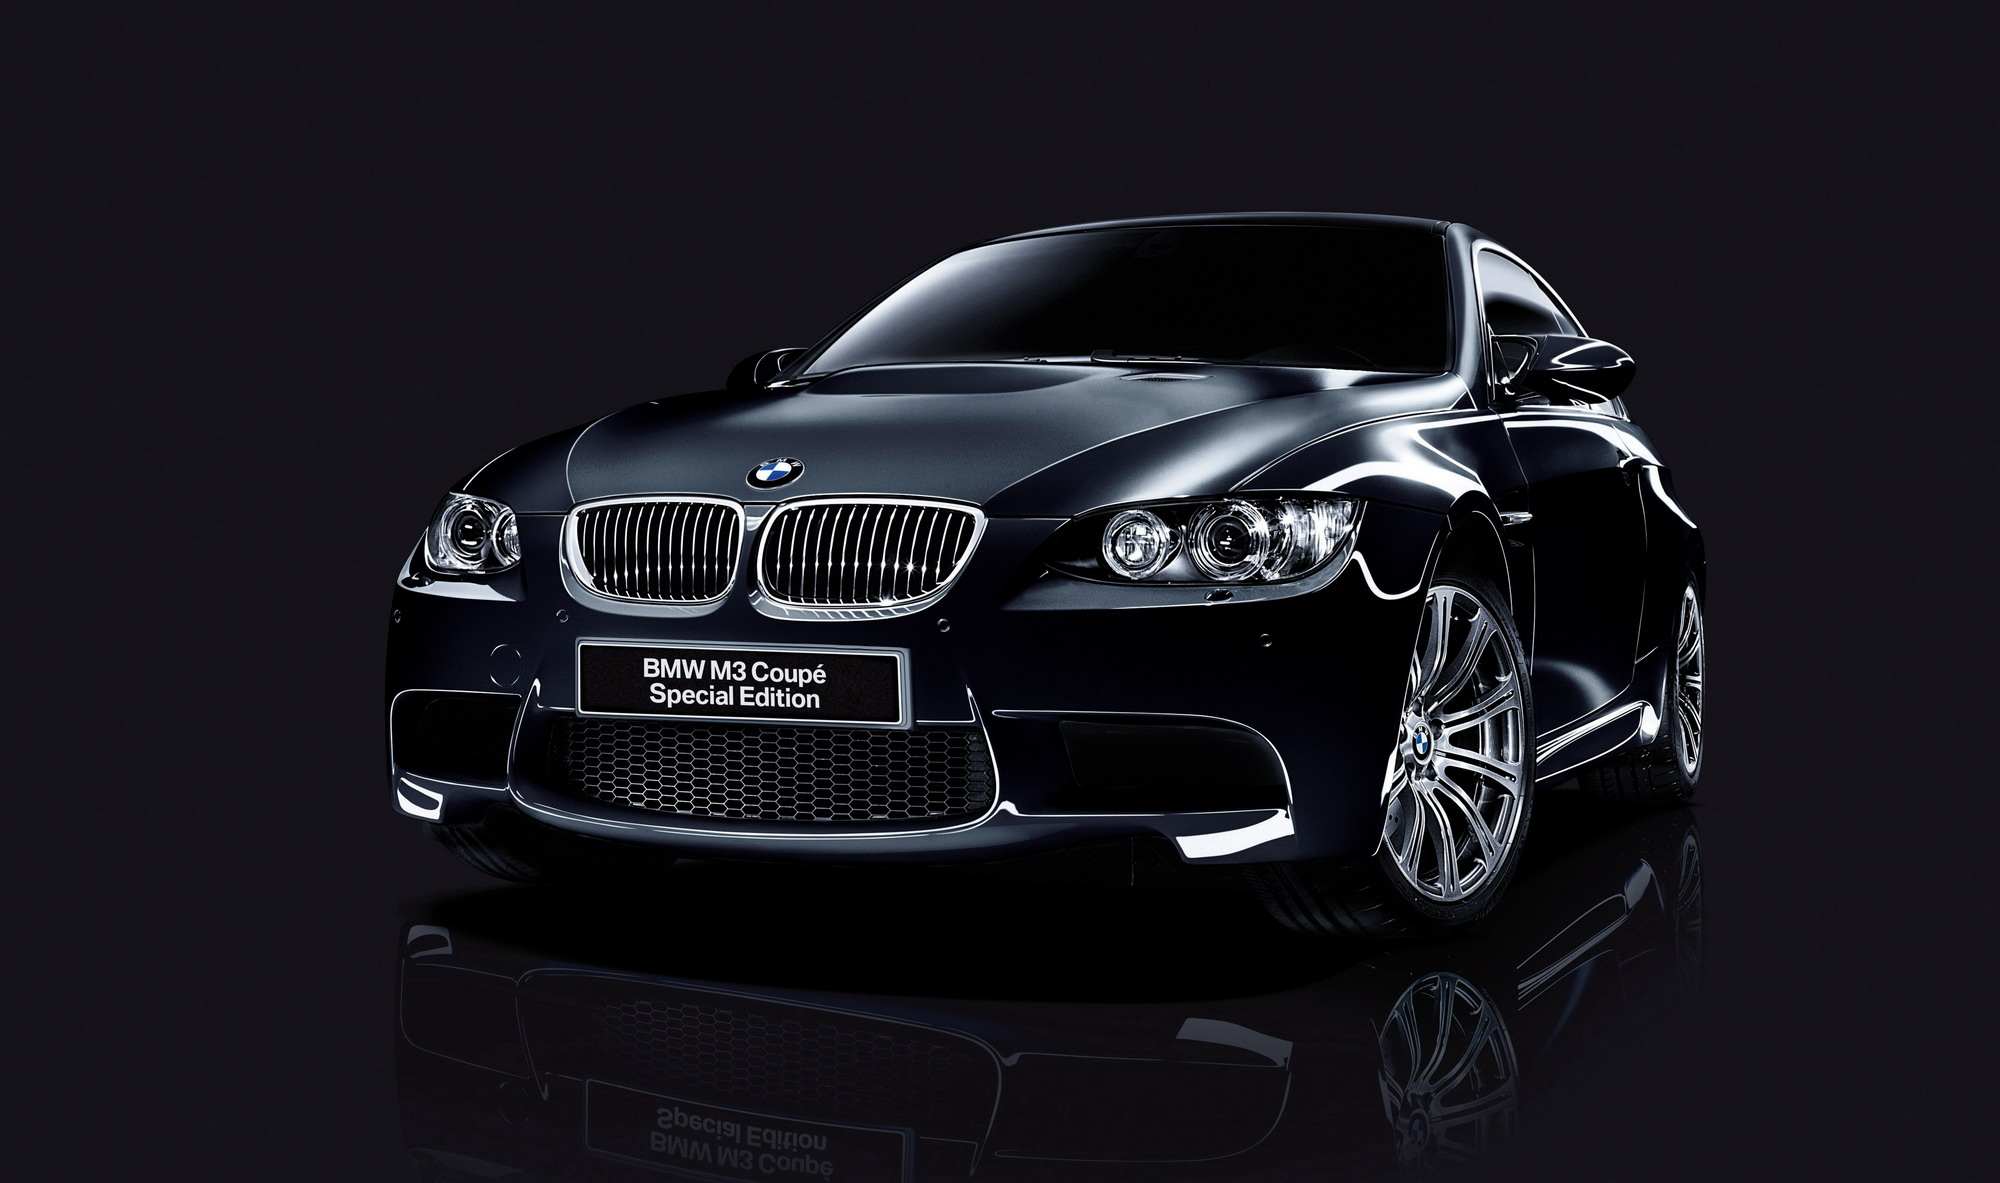 2011 BMW M3 Coupe Matte Edition Review - Gallery - Top Speed